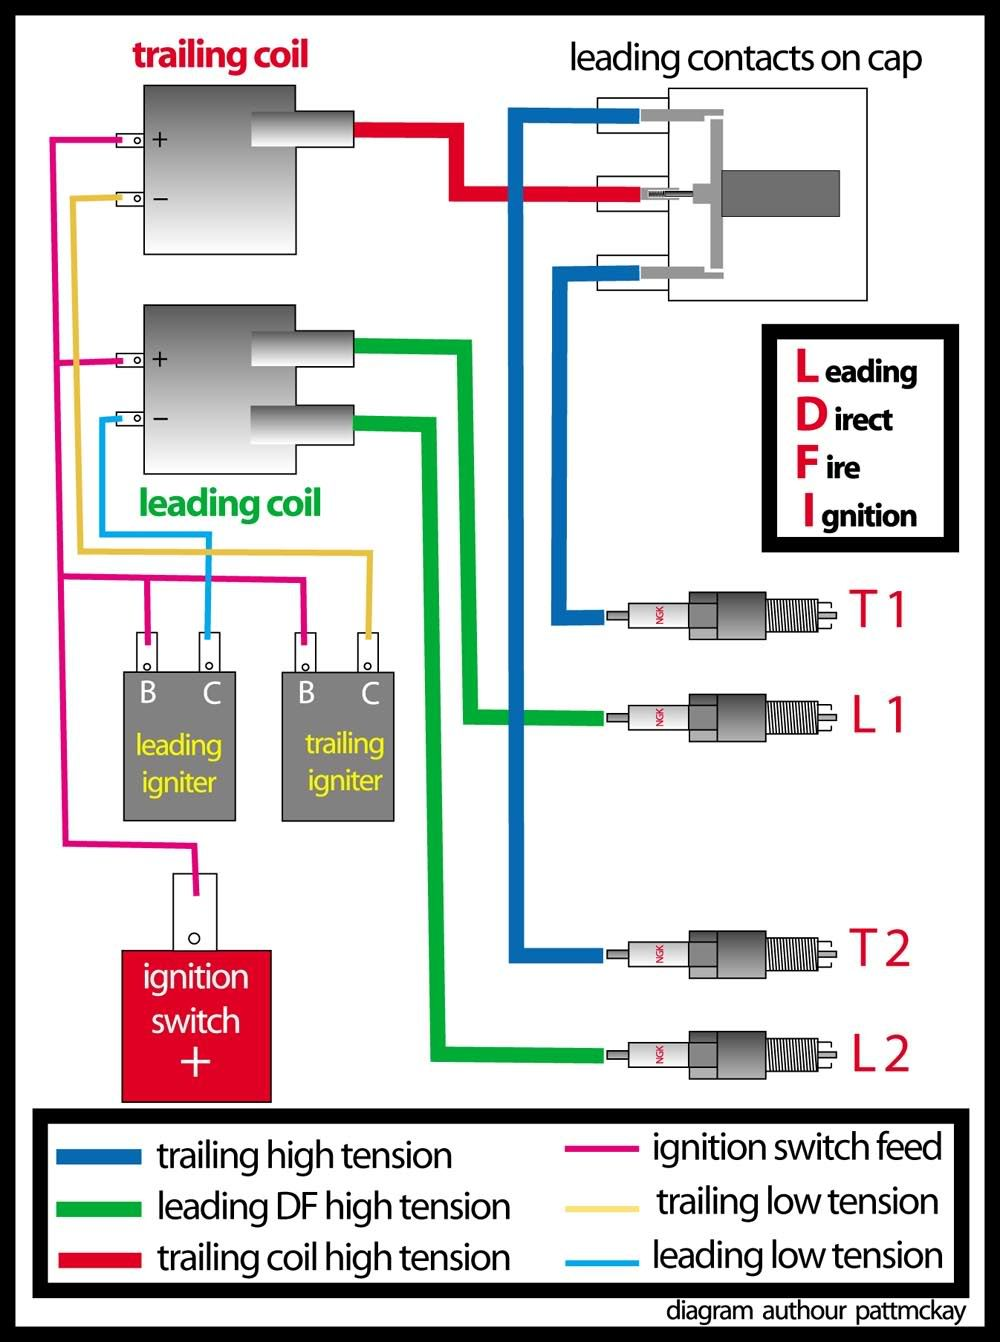 f51a9f8accfbb2accd16cb3edbec5003 here is a simple wiring diagram for a single leading direct fire ford ignition wiring diagram at bayanpartner.co